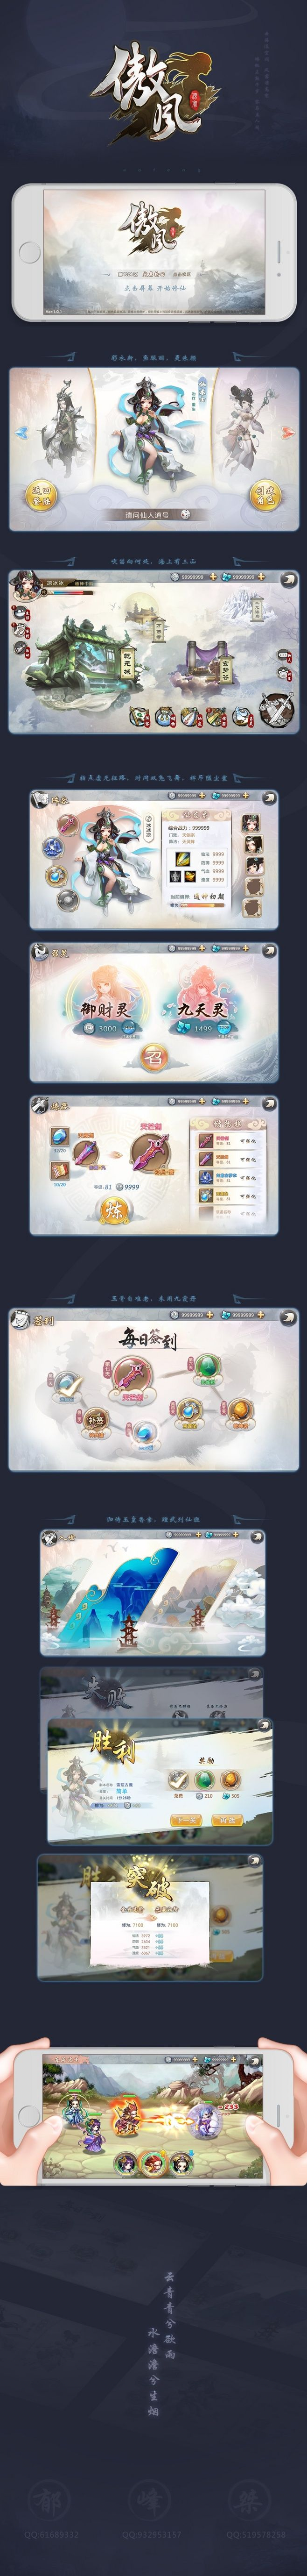 """Original works: original Chinese style game interface - """"proud of the wind"""" ..."""